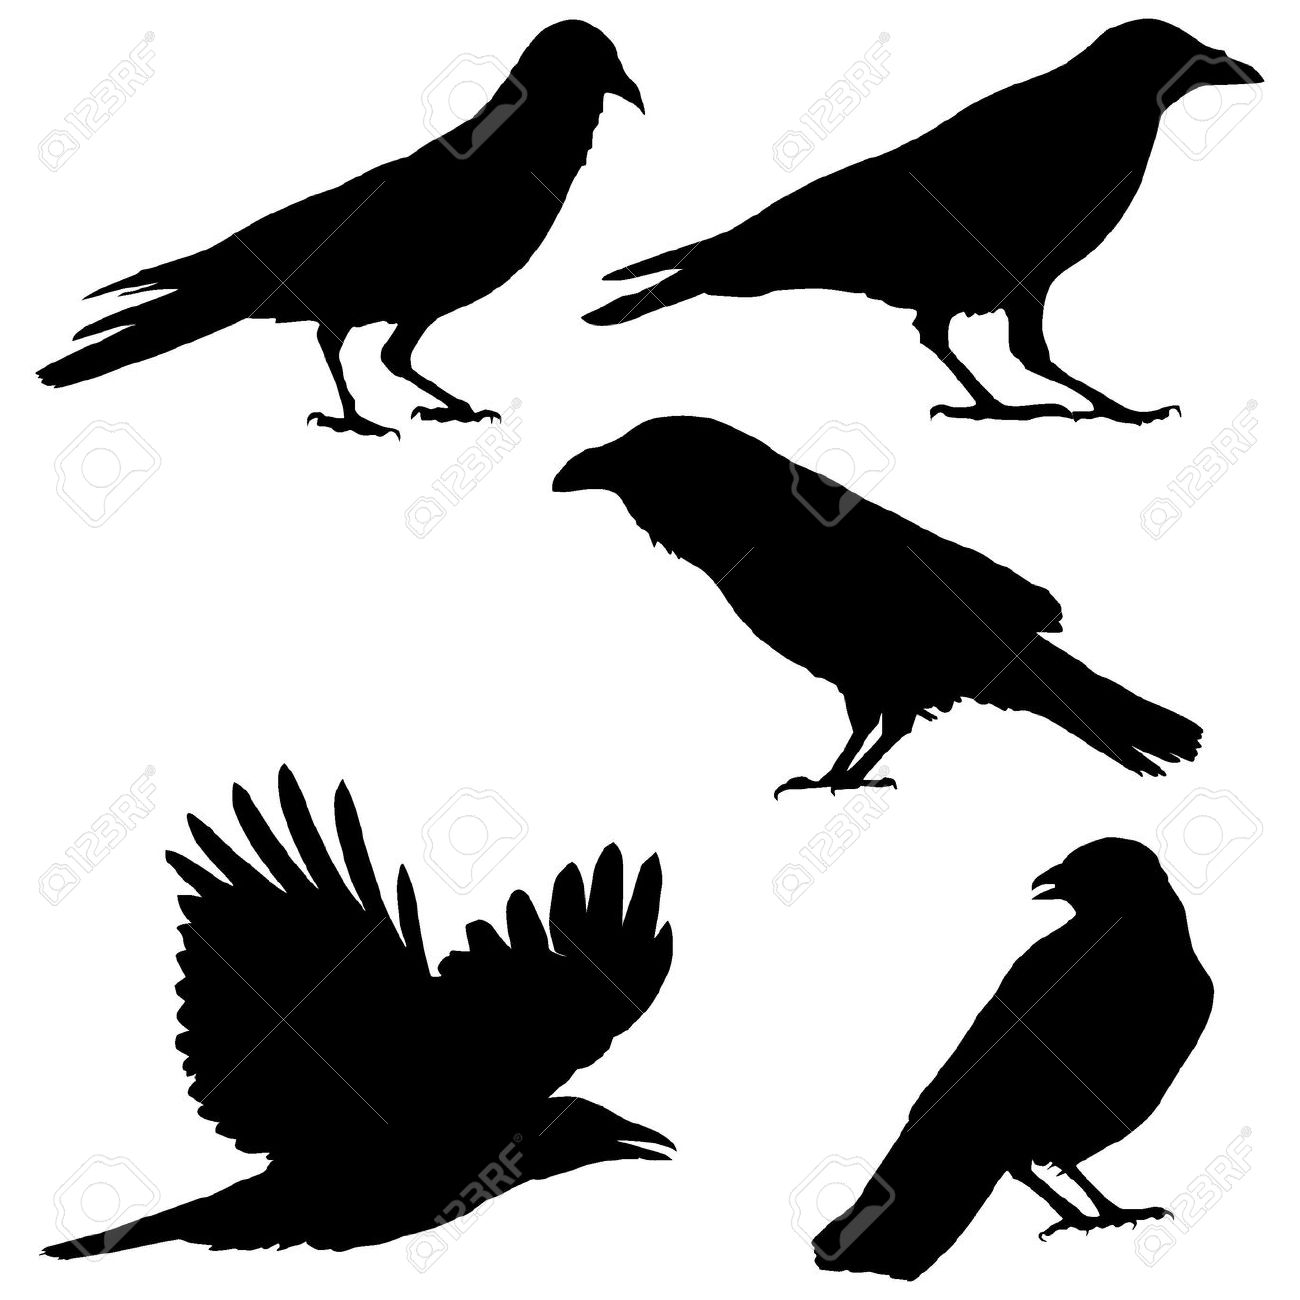 Crow clipart simple Crow art 130 #6 clip